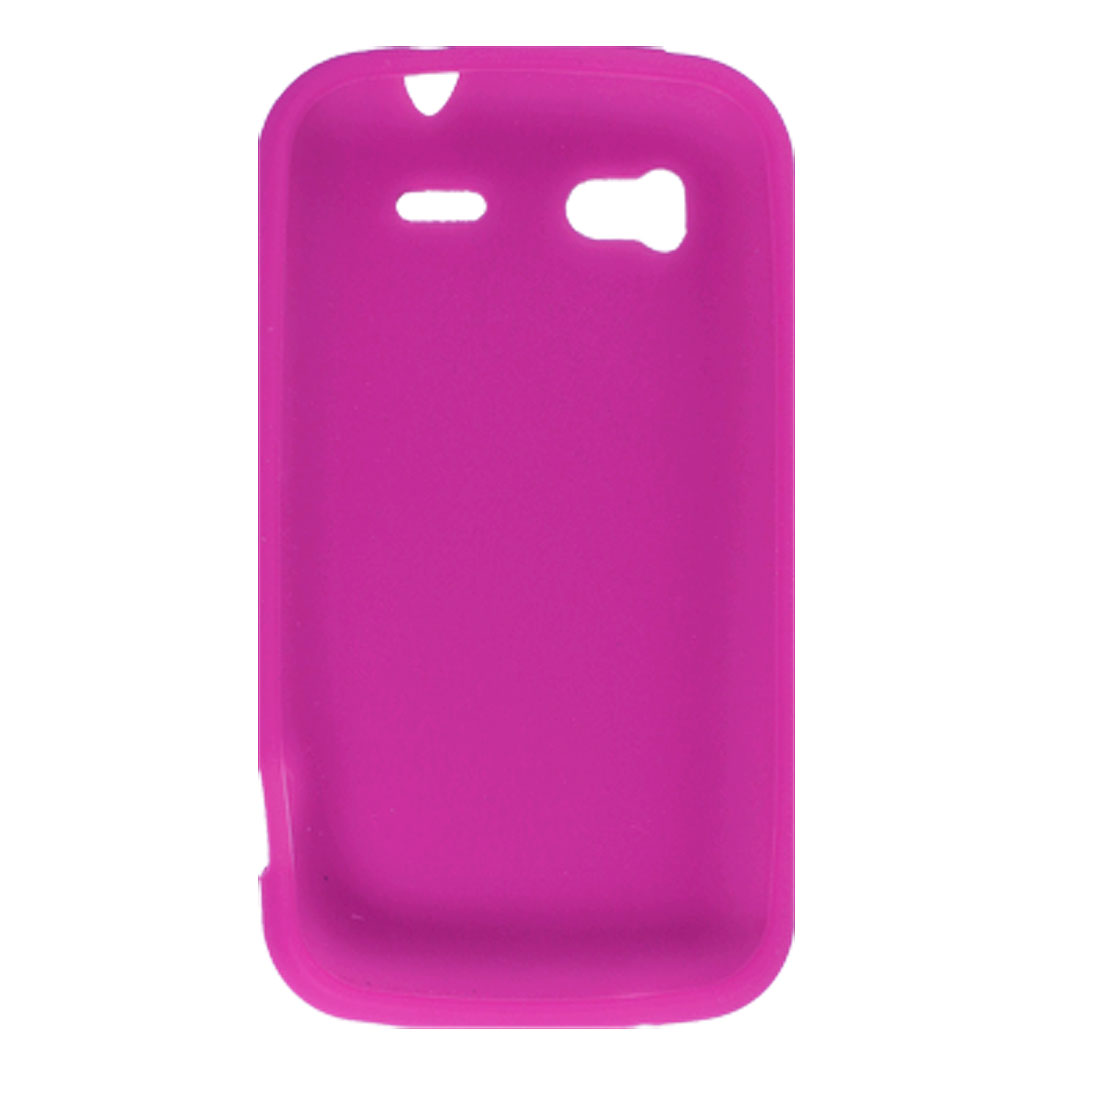 Protective Soft Silicone Case Shell Fuchsia for HTC Sensation 4G